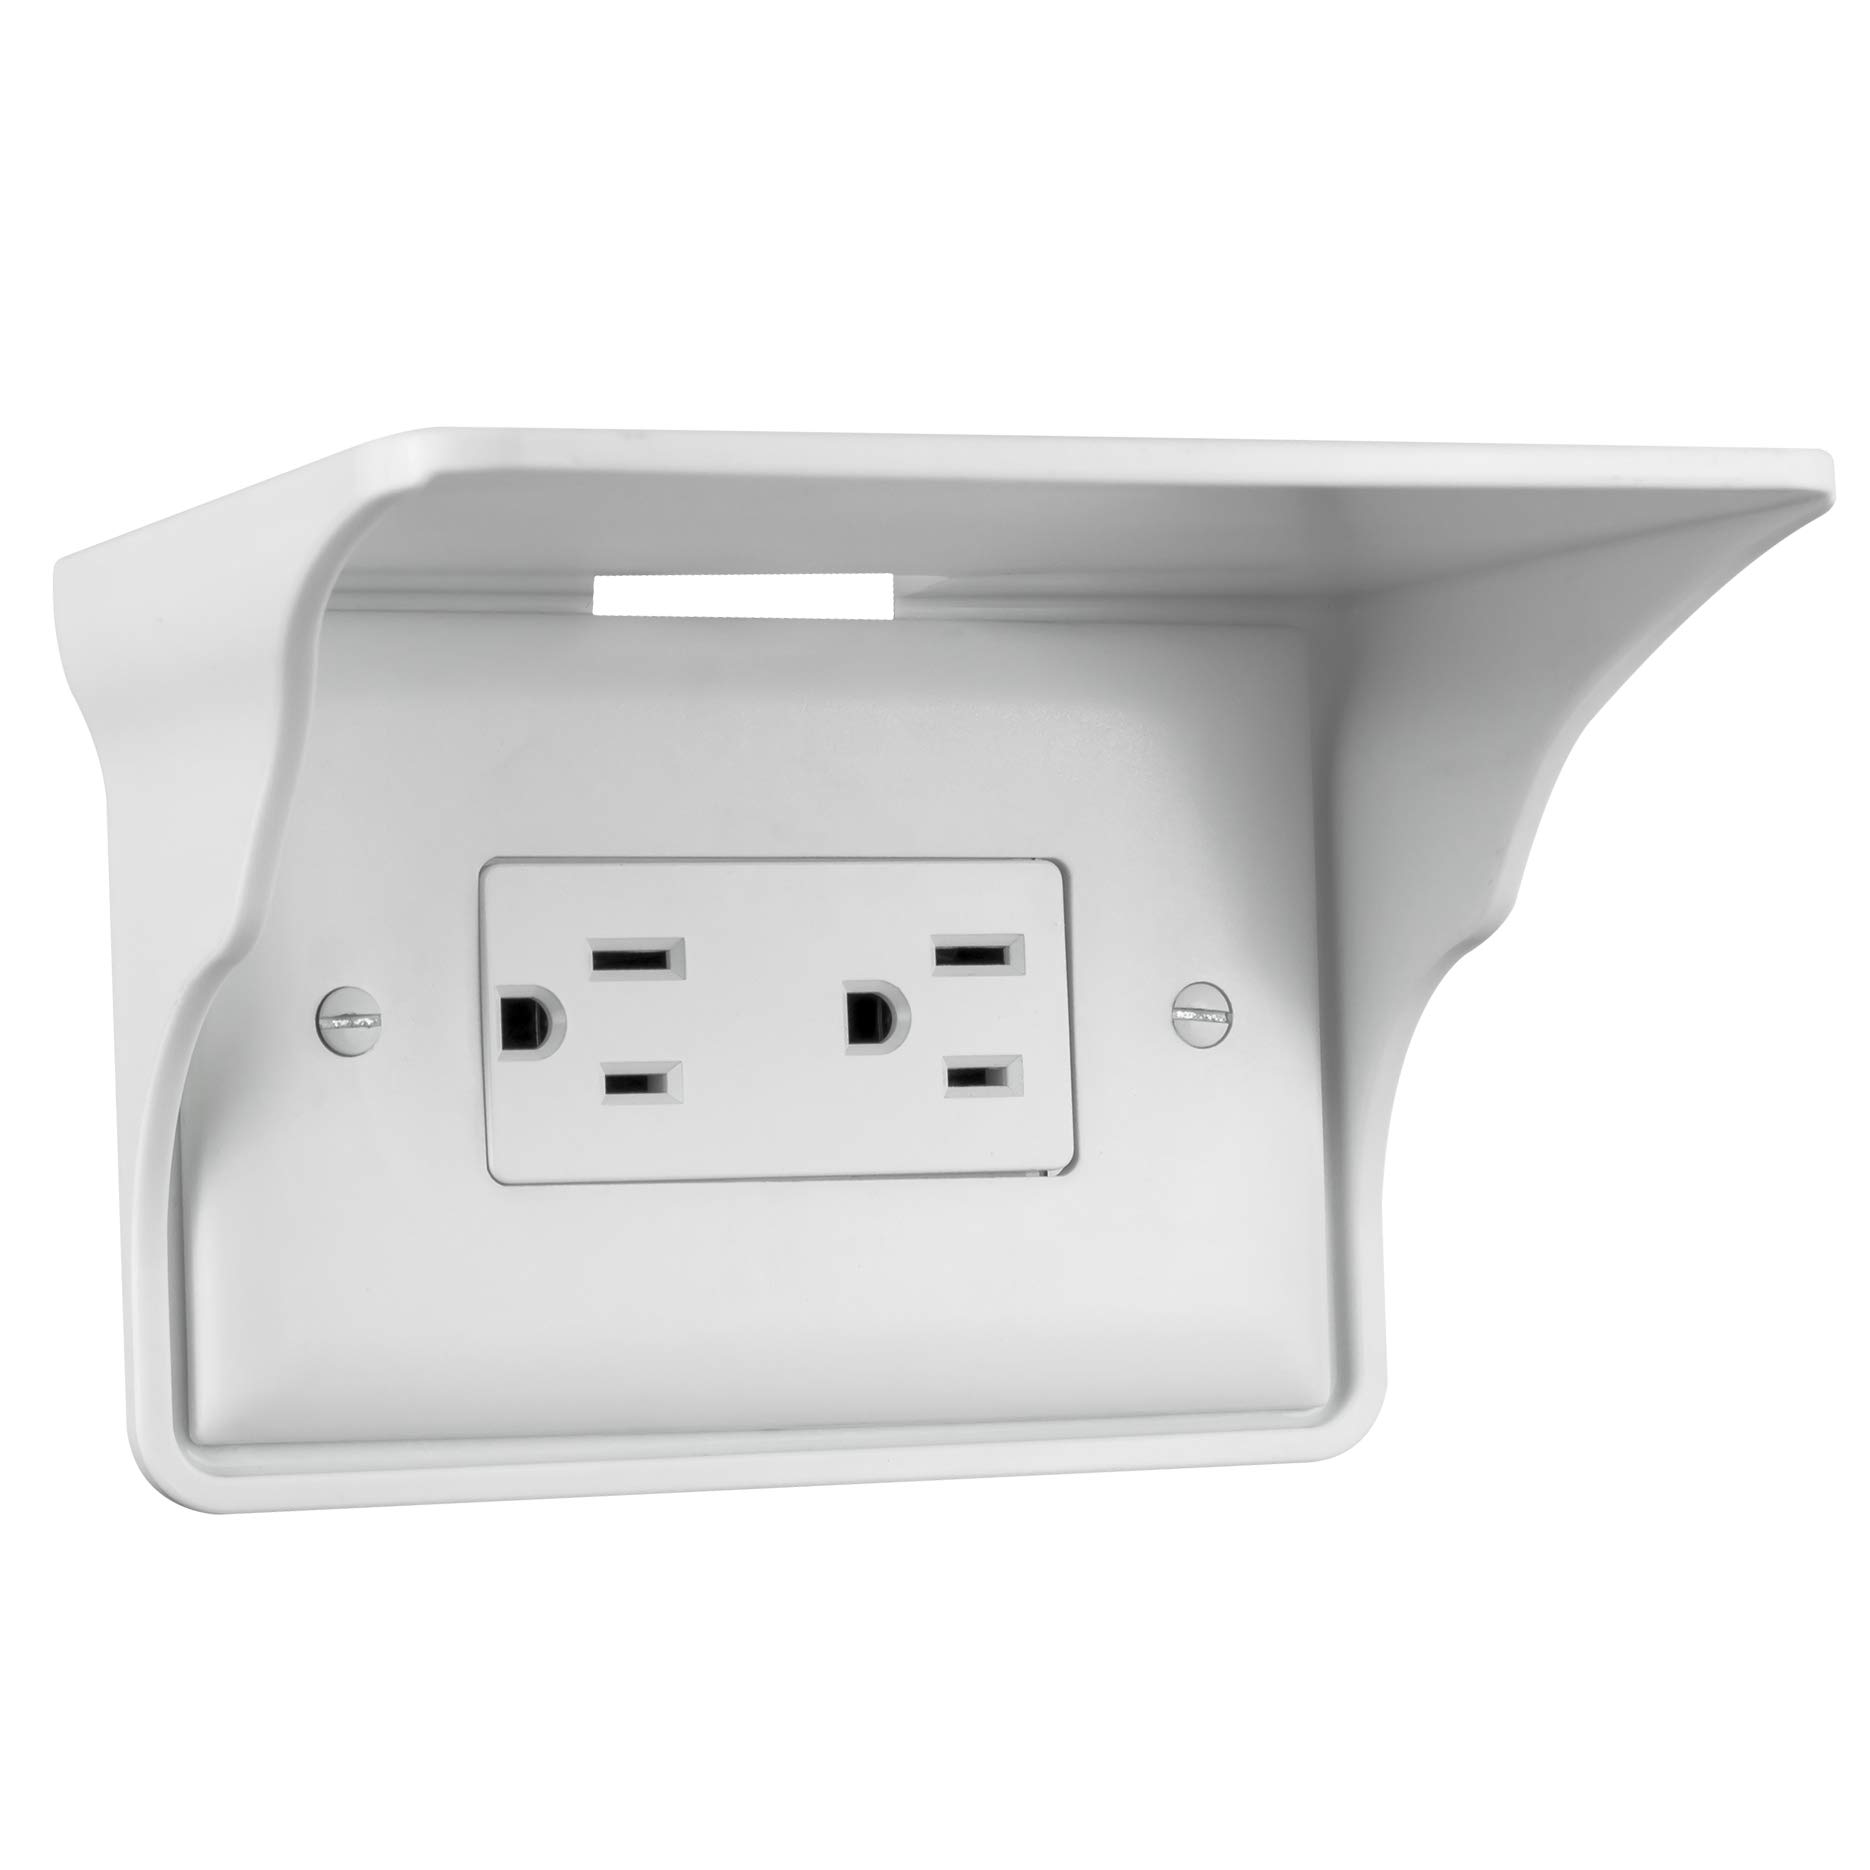 Storage Theory | Horizontal Outlet Power Perch | Ultimate Outlet Shelf | Easy Installation, No Additional Hardware Required | Holds Up to 10lbs | White Color | Single Shelf